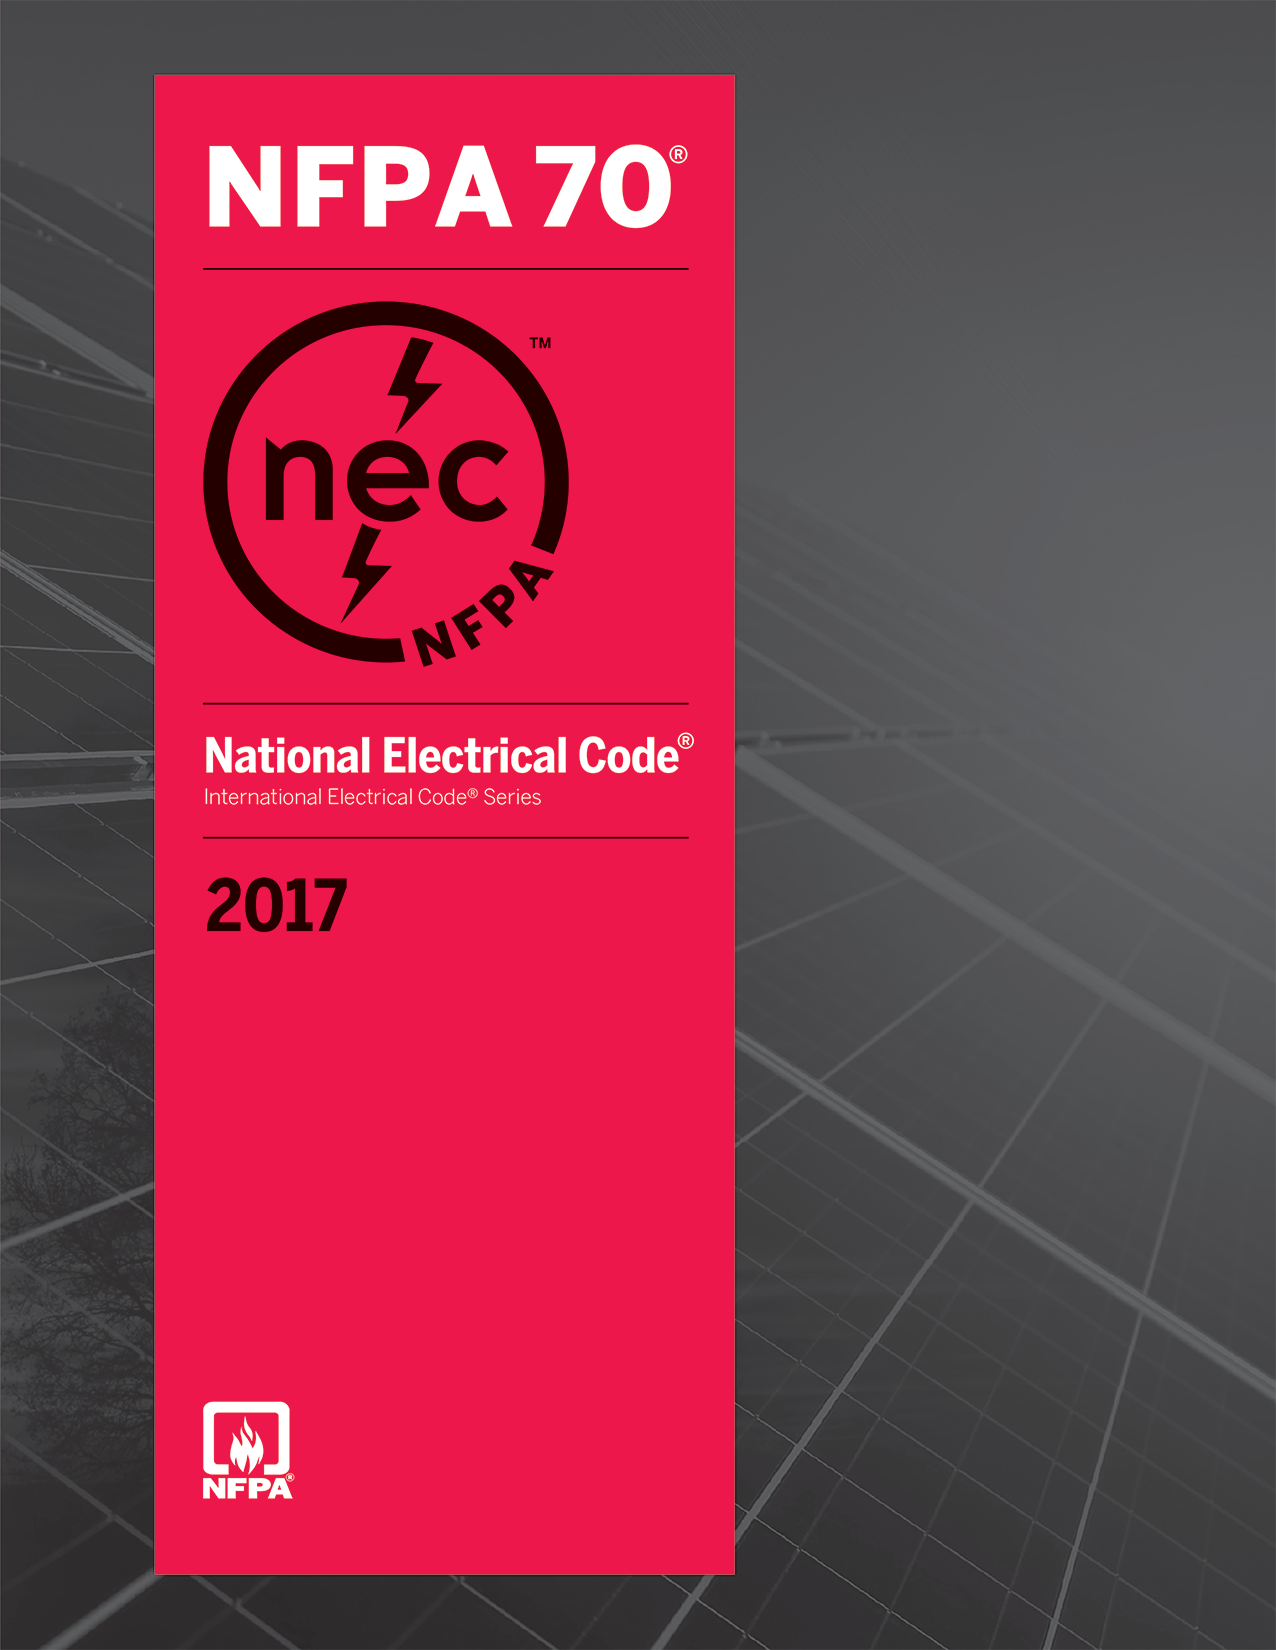 2017 National Electrical Code (NEC)